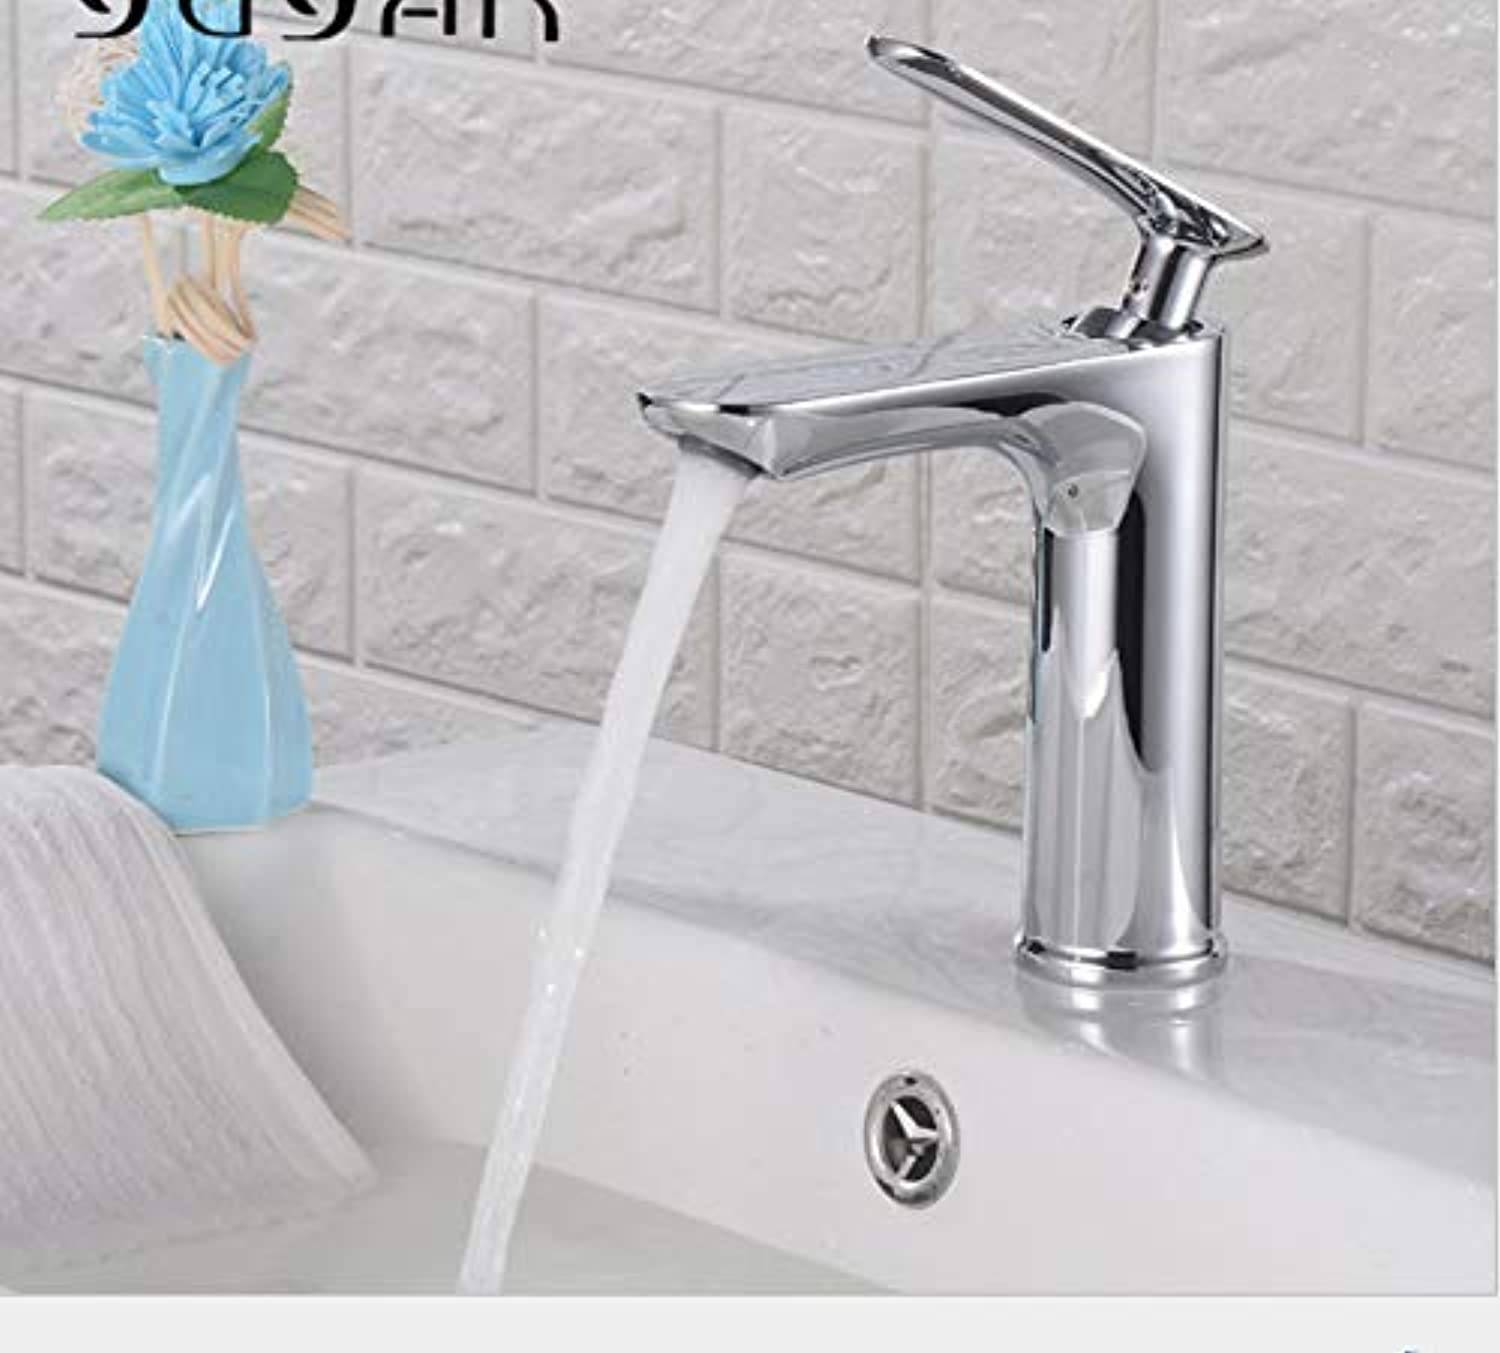 Kitchen Sink Taps Bathroom Sink Taps Copper Basin Washbasin Faucet Built-In Flat Single Hole Hot And Cold Water Mixing Bathroom Faucet